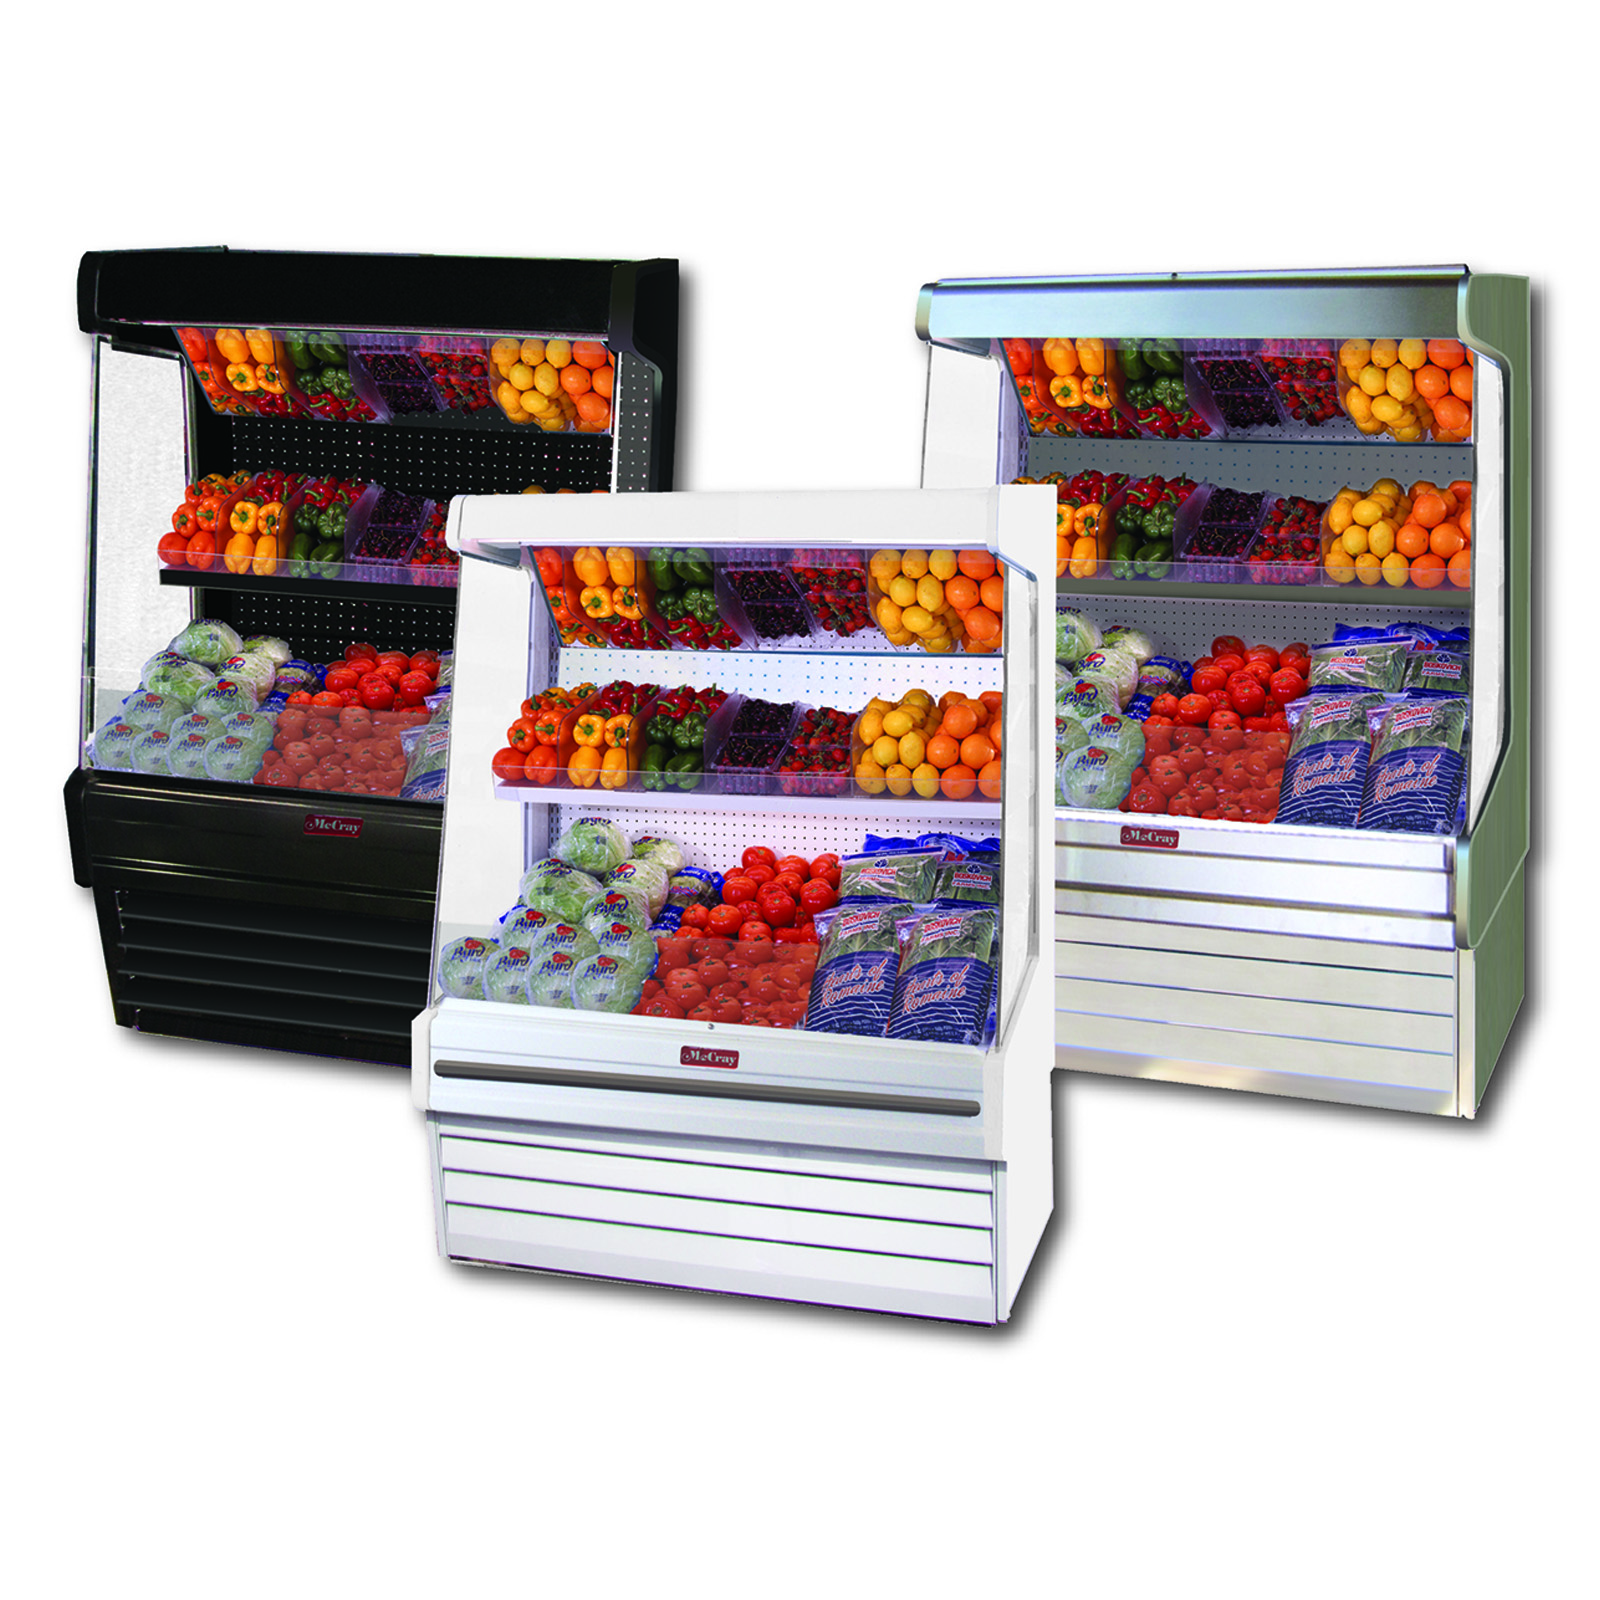 Howard-McCray R-OP30E-6-S-LED display case, produce